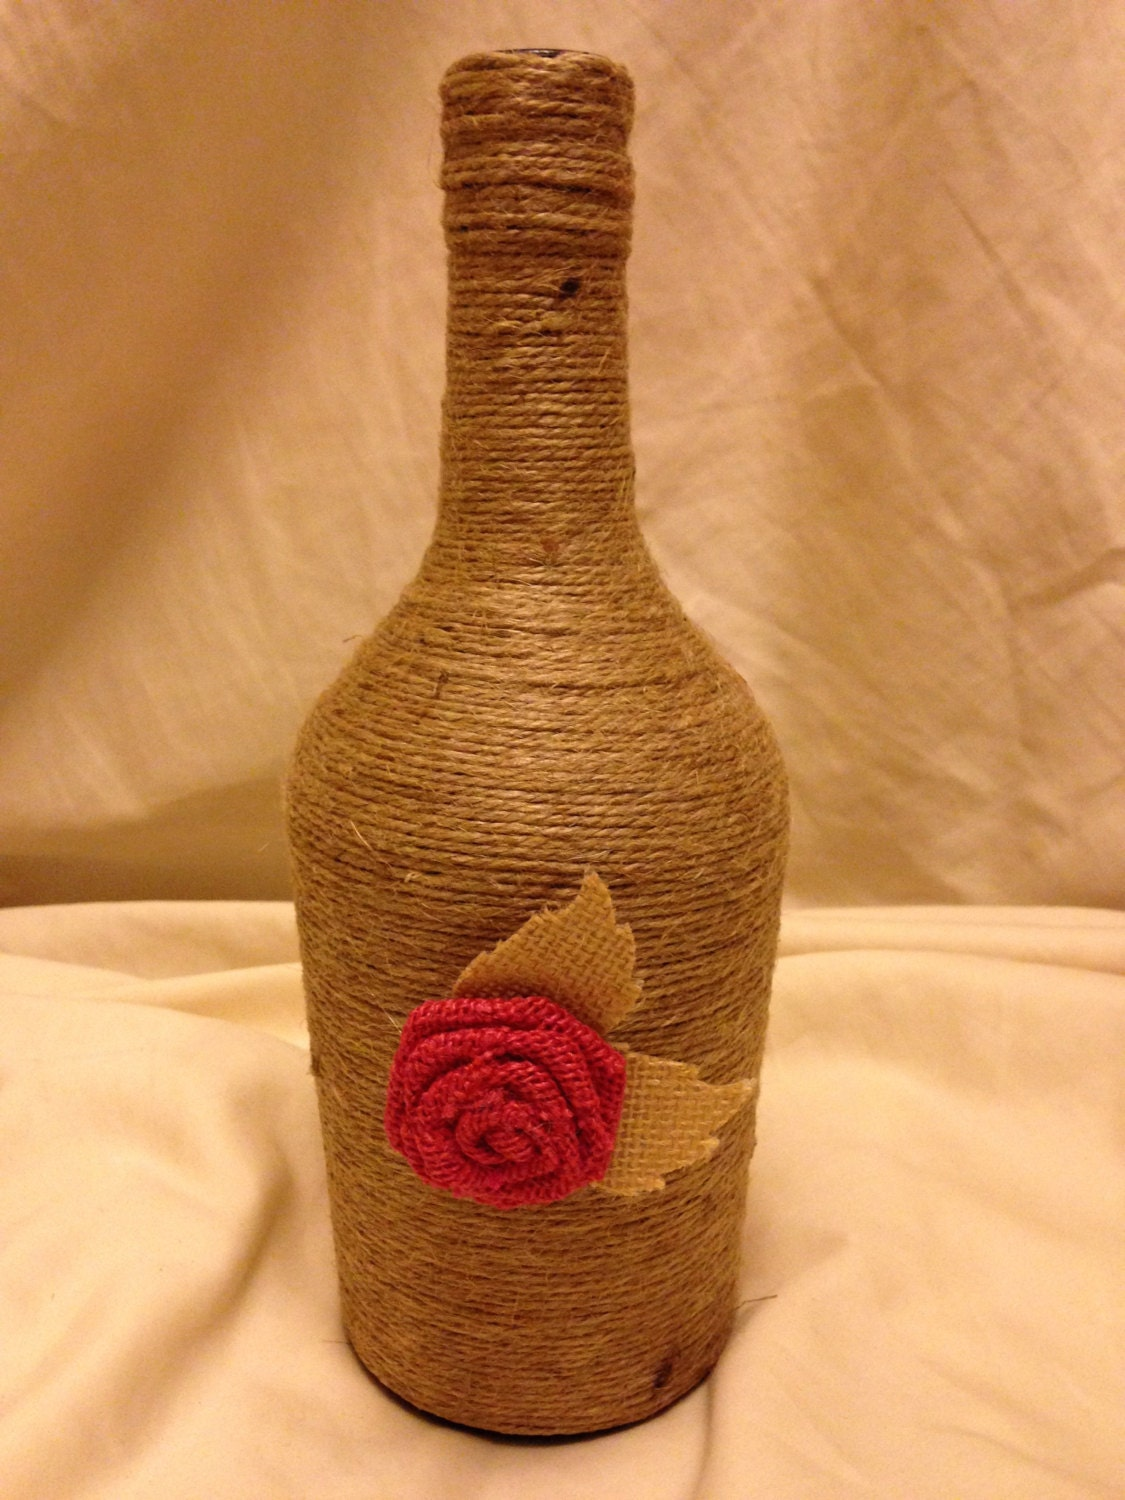 Love Twine Wrapped Wine Bottles |Twine Covered Wine Bottles